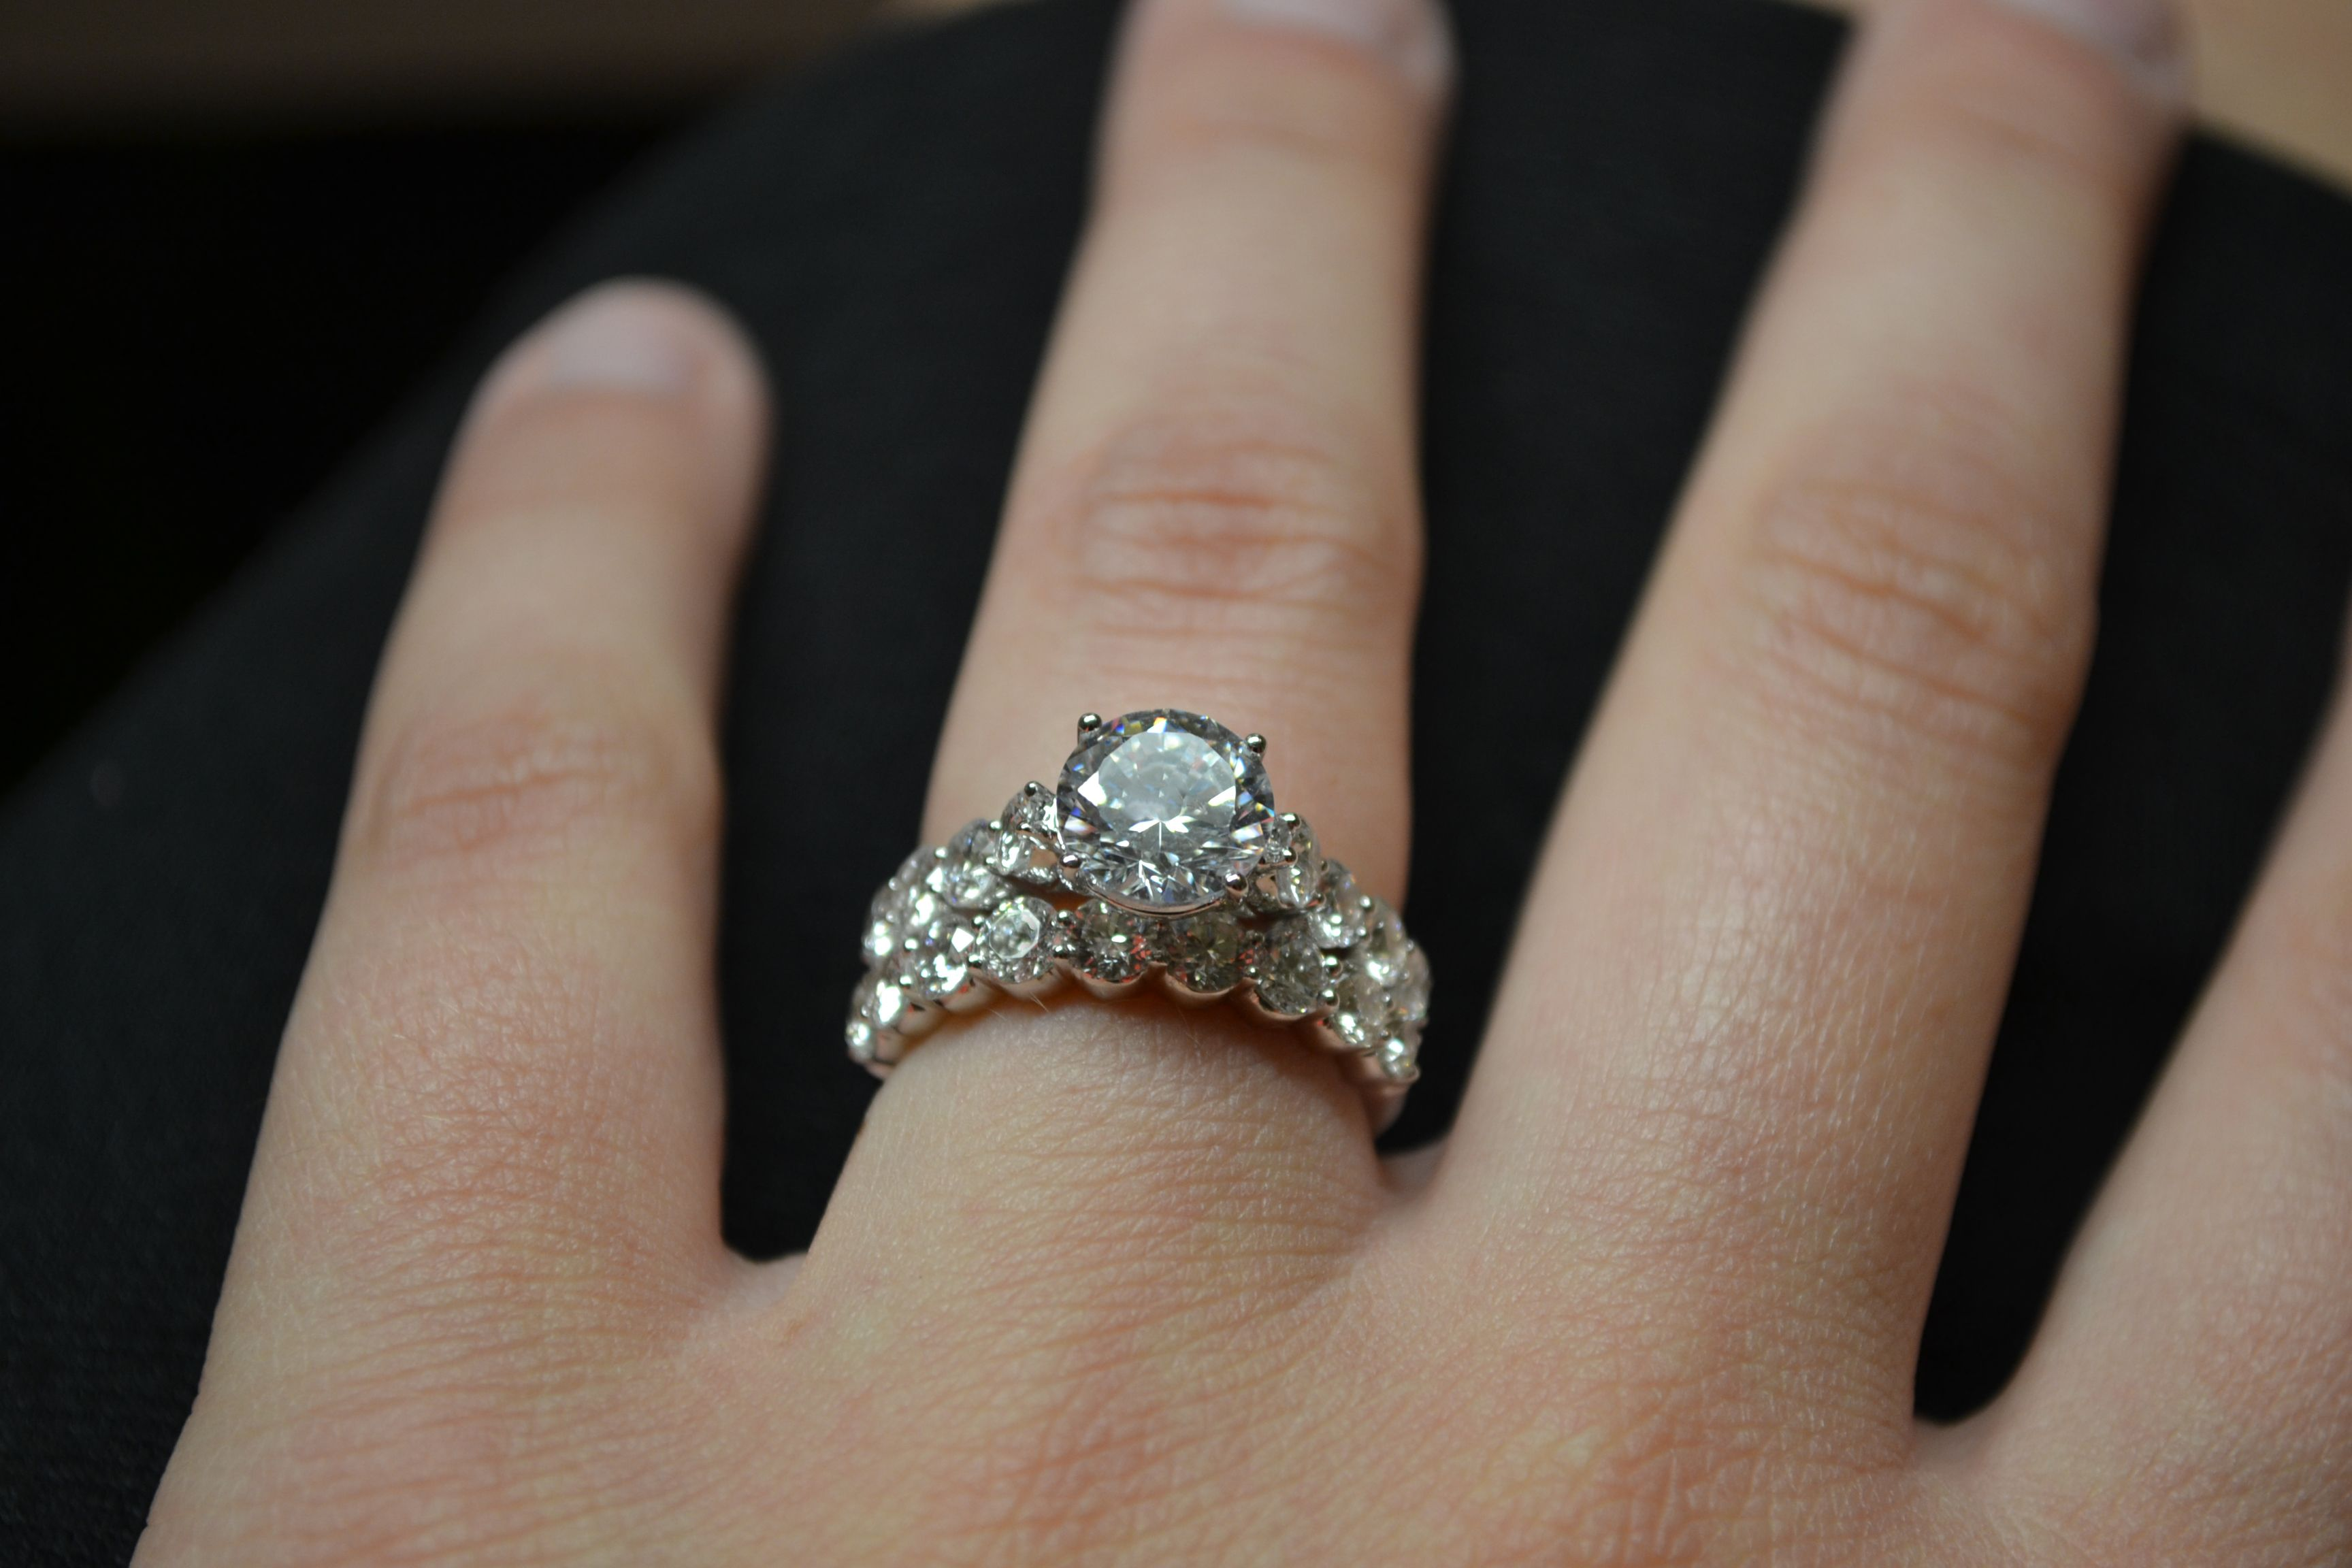 stone unique collection engagement vintage ring future present carat beautiful three wedding c round awesome cut diamond sets past anniversary